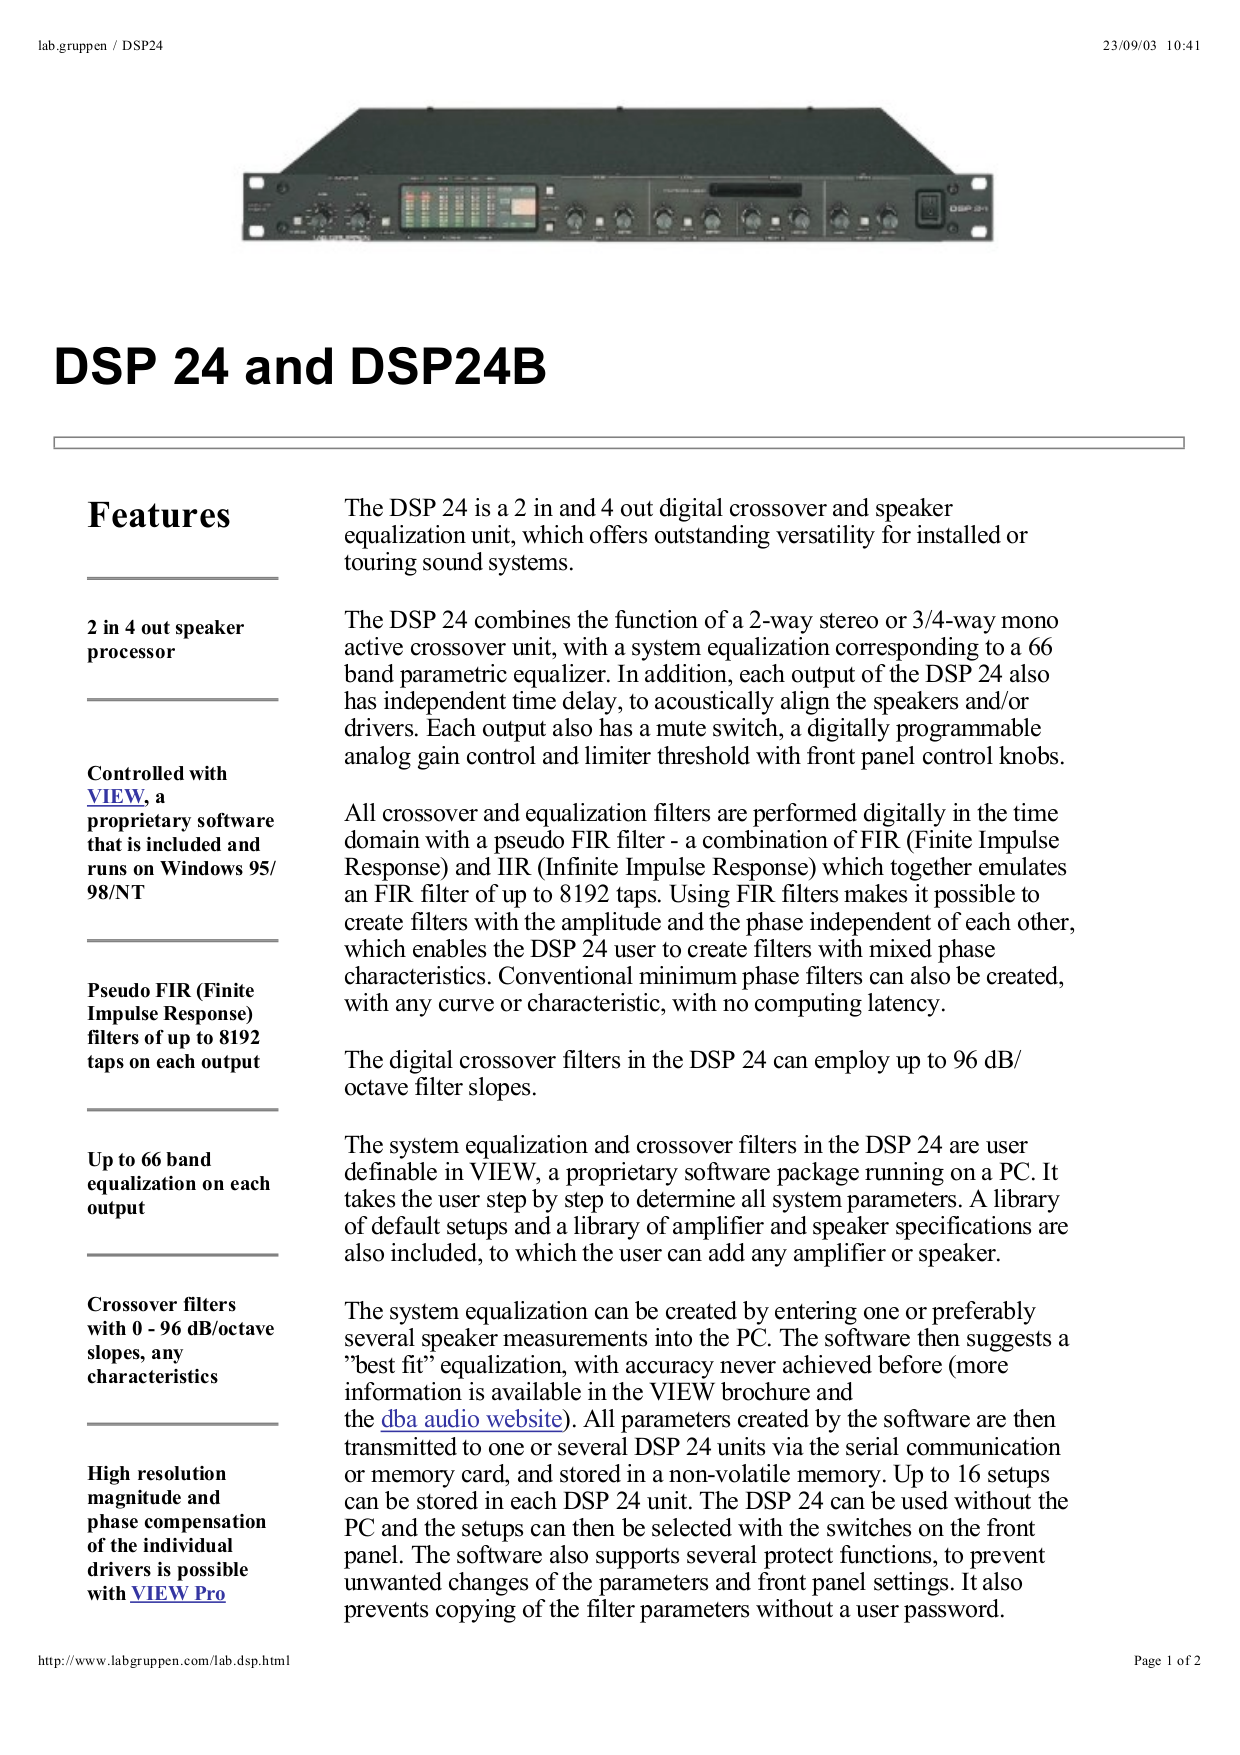 pdf for Lab.gruppen Other DSP 24 Crossover Networks manual